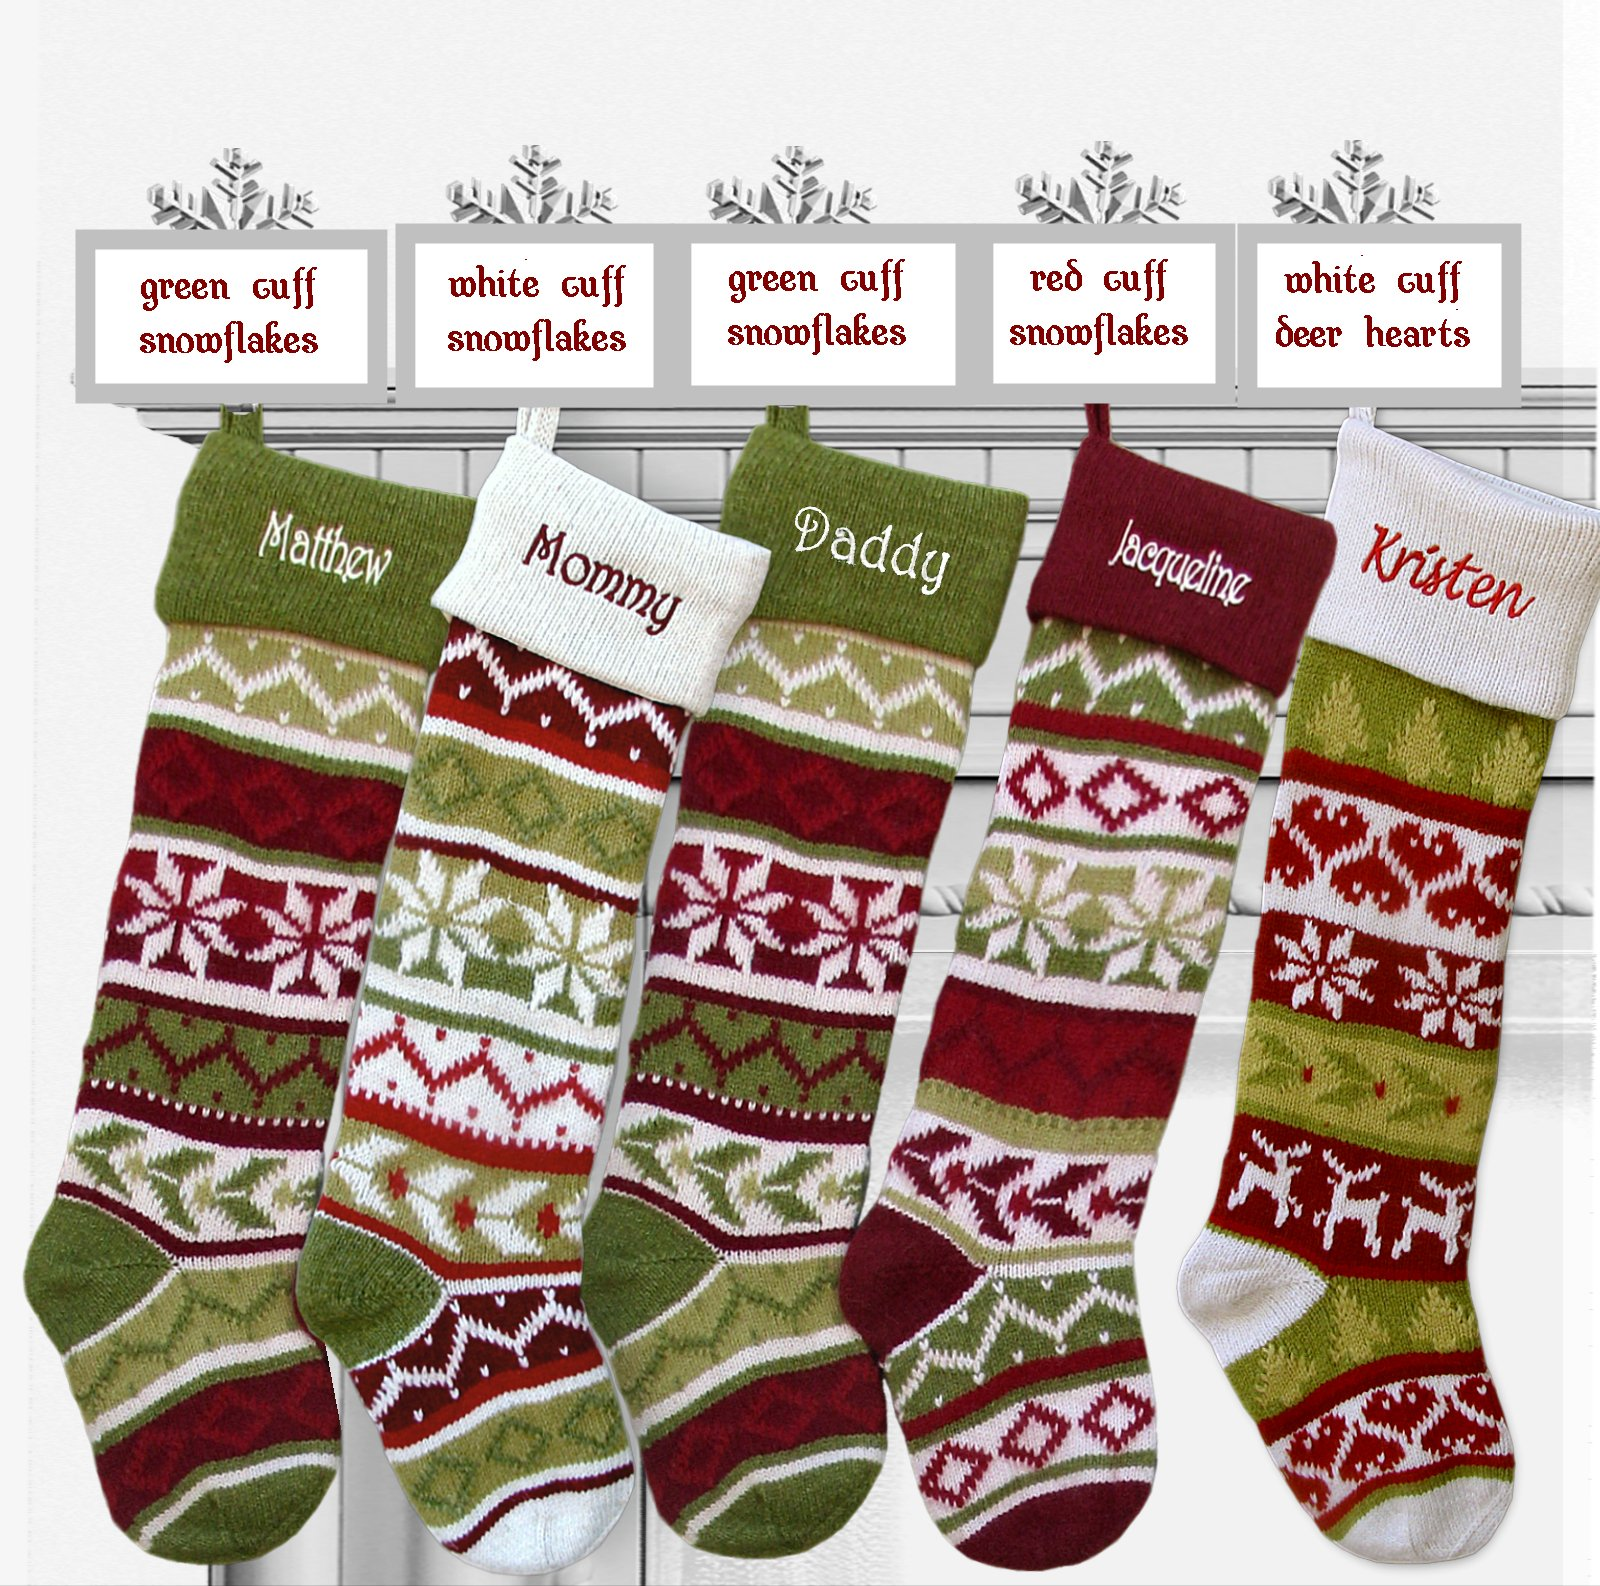 SET OF 5 Oversized 28'' Knitted Christmas Stockings FairIsle Knit + Monogram - CHOOSE YOUR DESIGNS - Embroidered with Choice of YOUR Names by CHRISTMAS-STOCKINGS-by-STOCKINGFACTORY (Image #2)